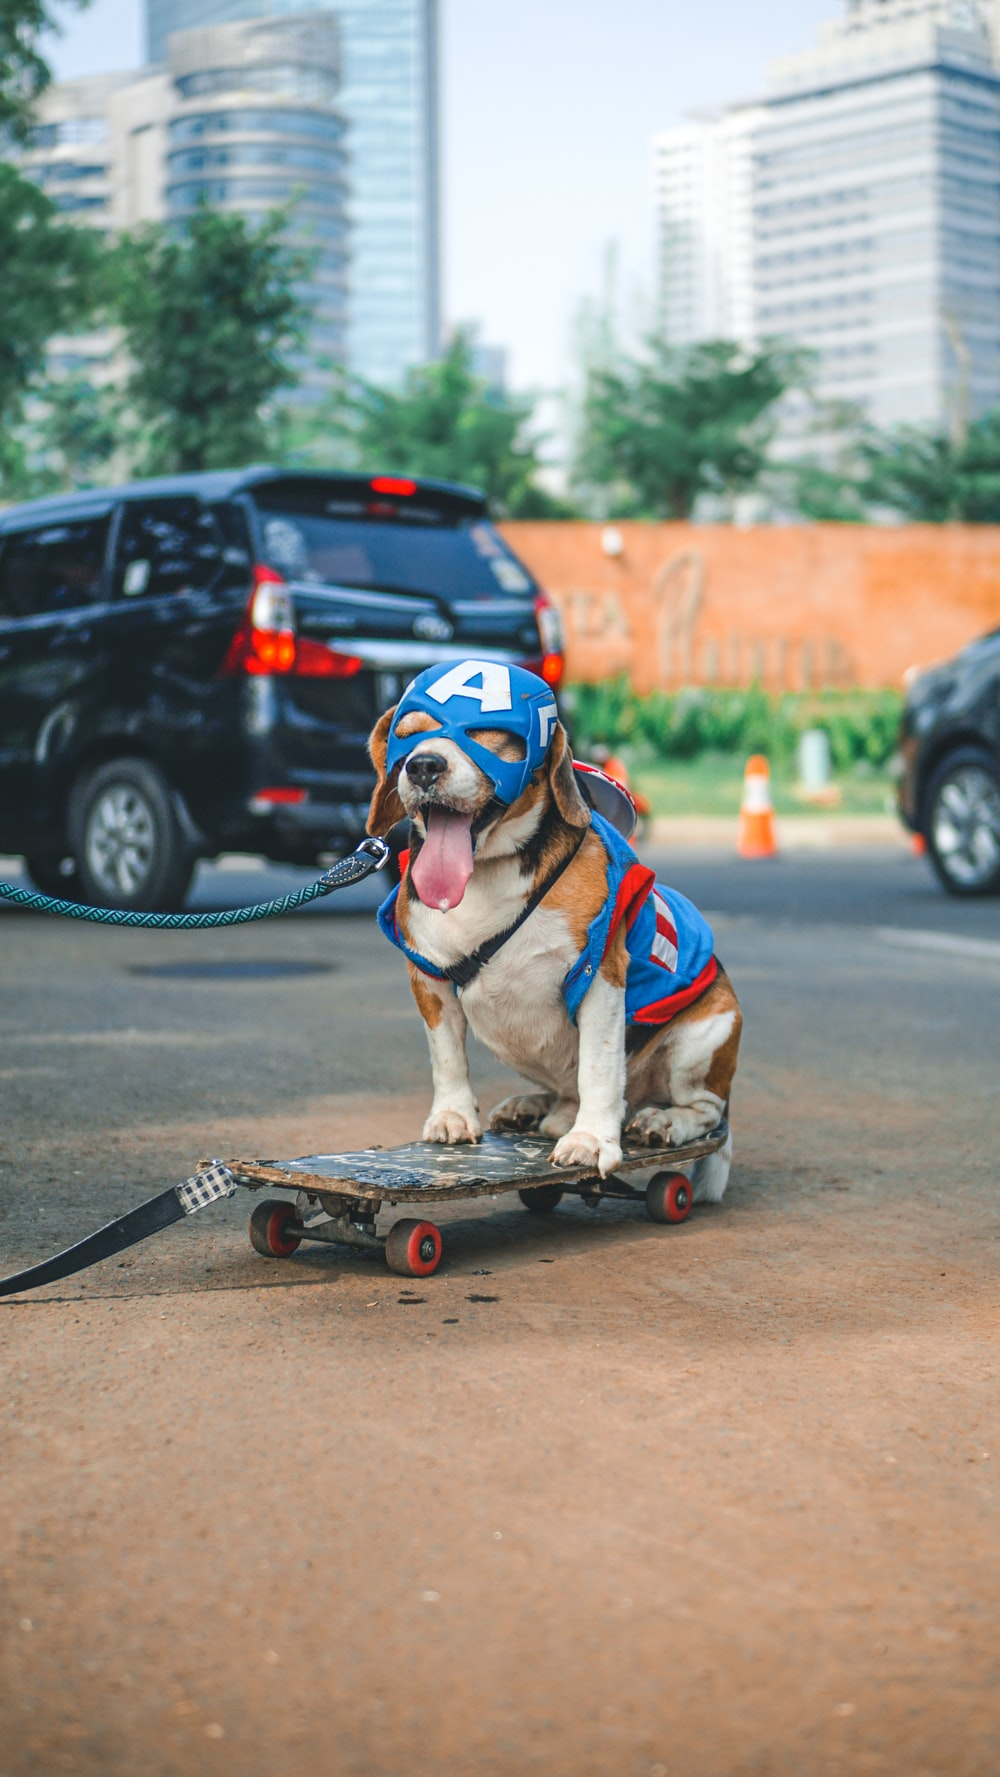 brown and white short coated dog with red and black skateboard on gray concrete road during